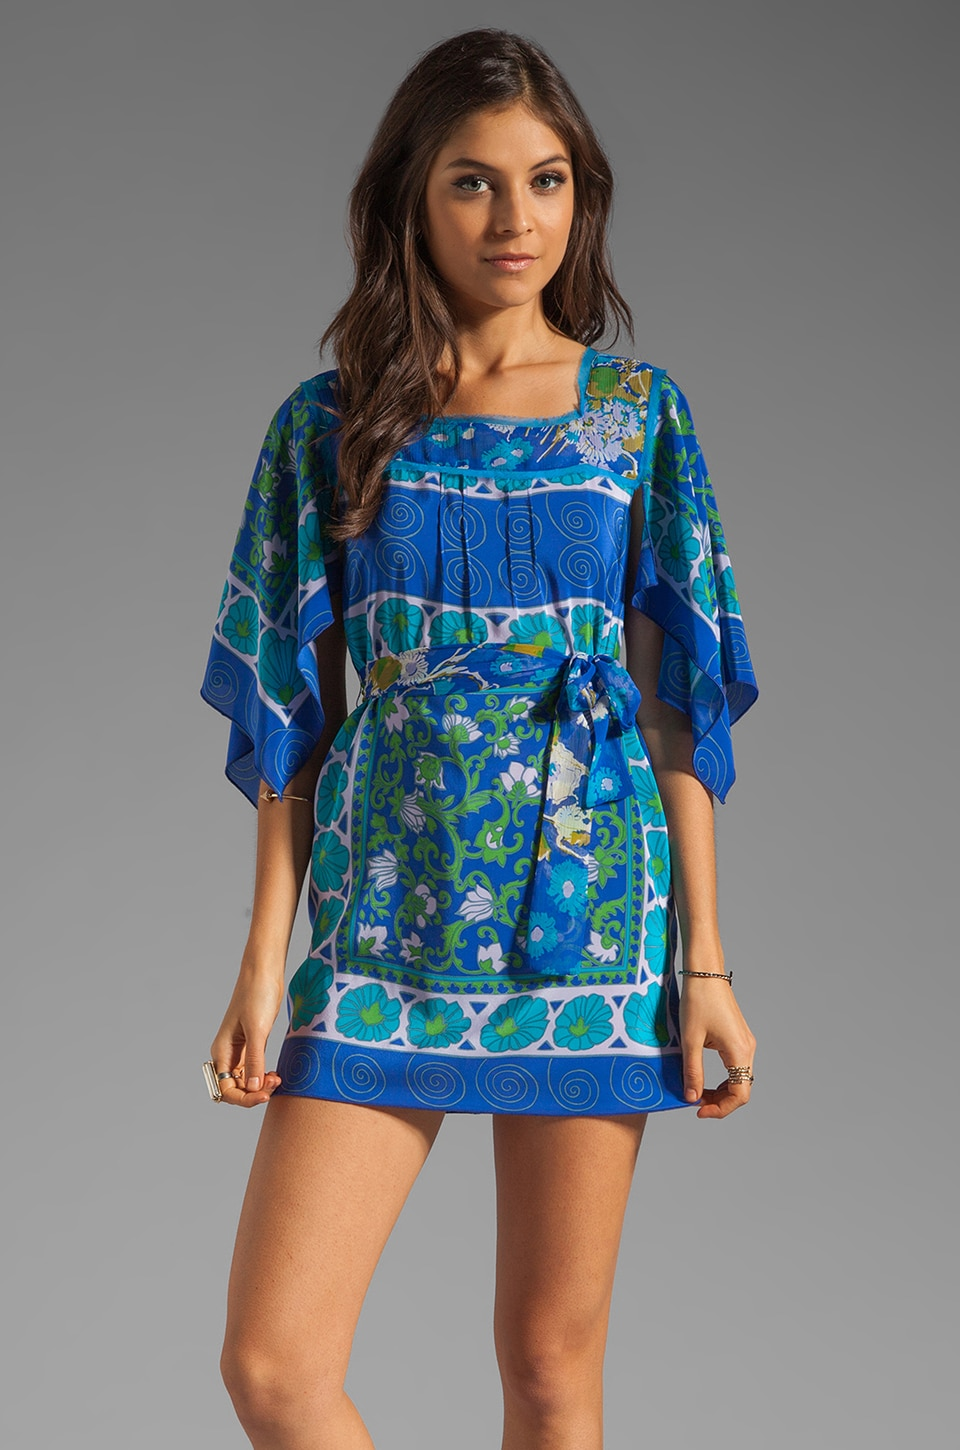 Anna Sui Mosaic Panel Print Dress in Royal Multi